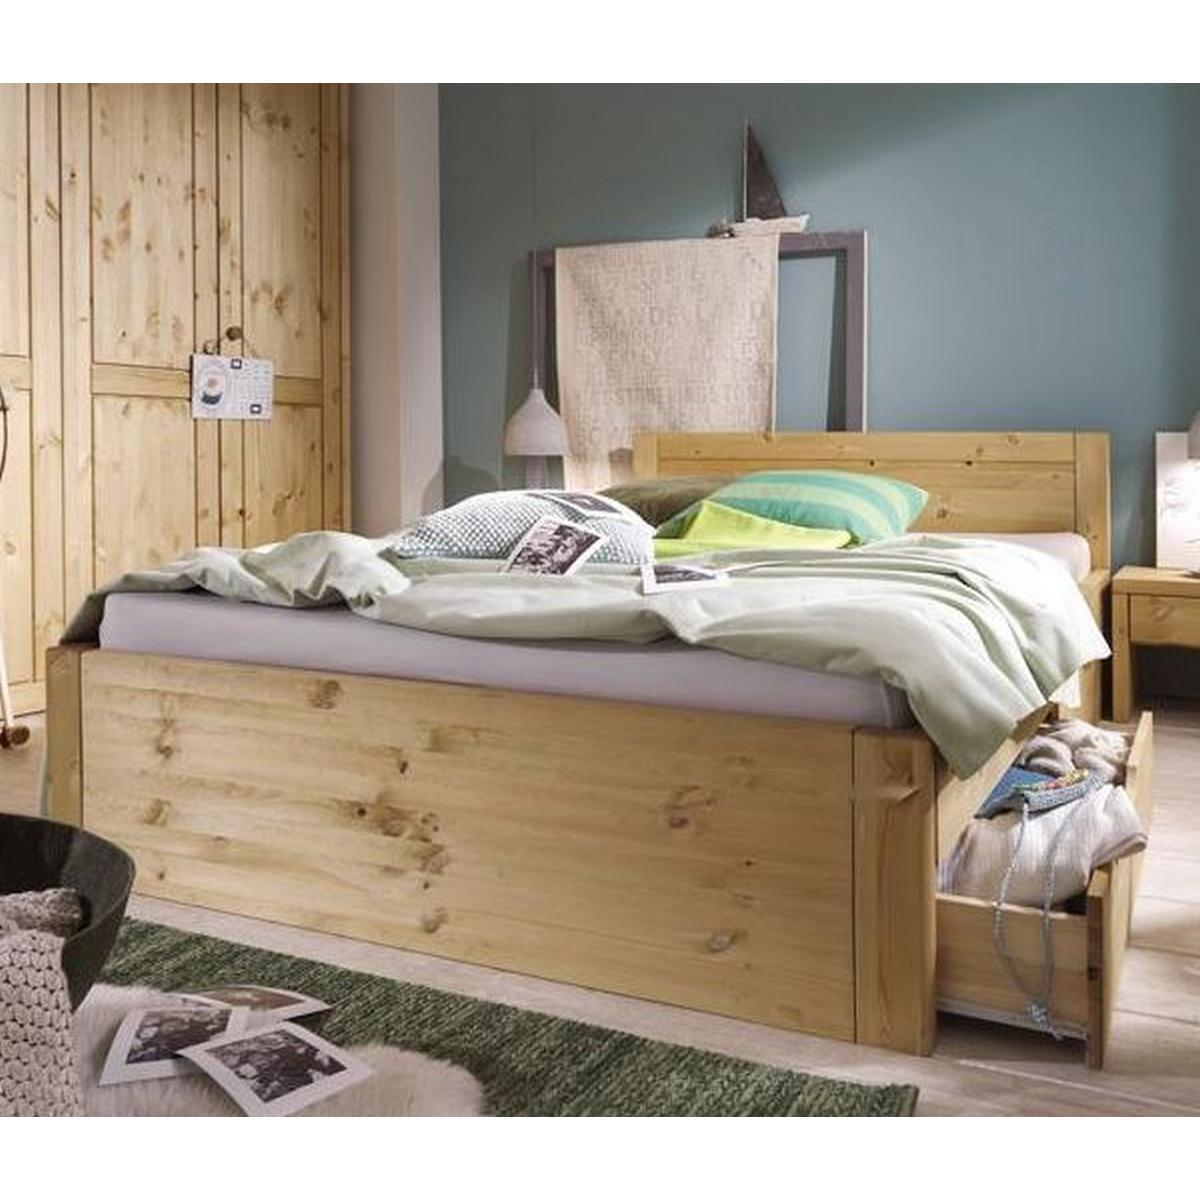 doppelbetten mit schubaden 200x200 holz kiefer massiv gebeizt ge lt rauna. Black Bedroom Furniture Sets. Home Design Ideas